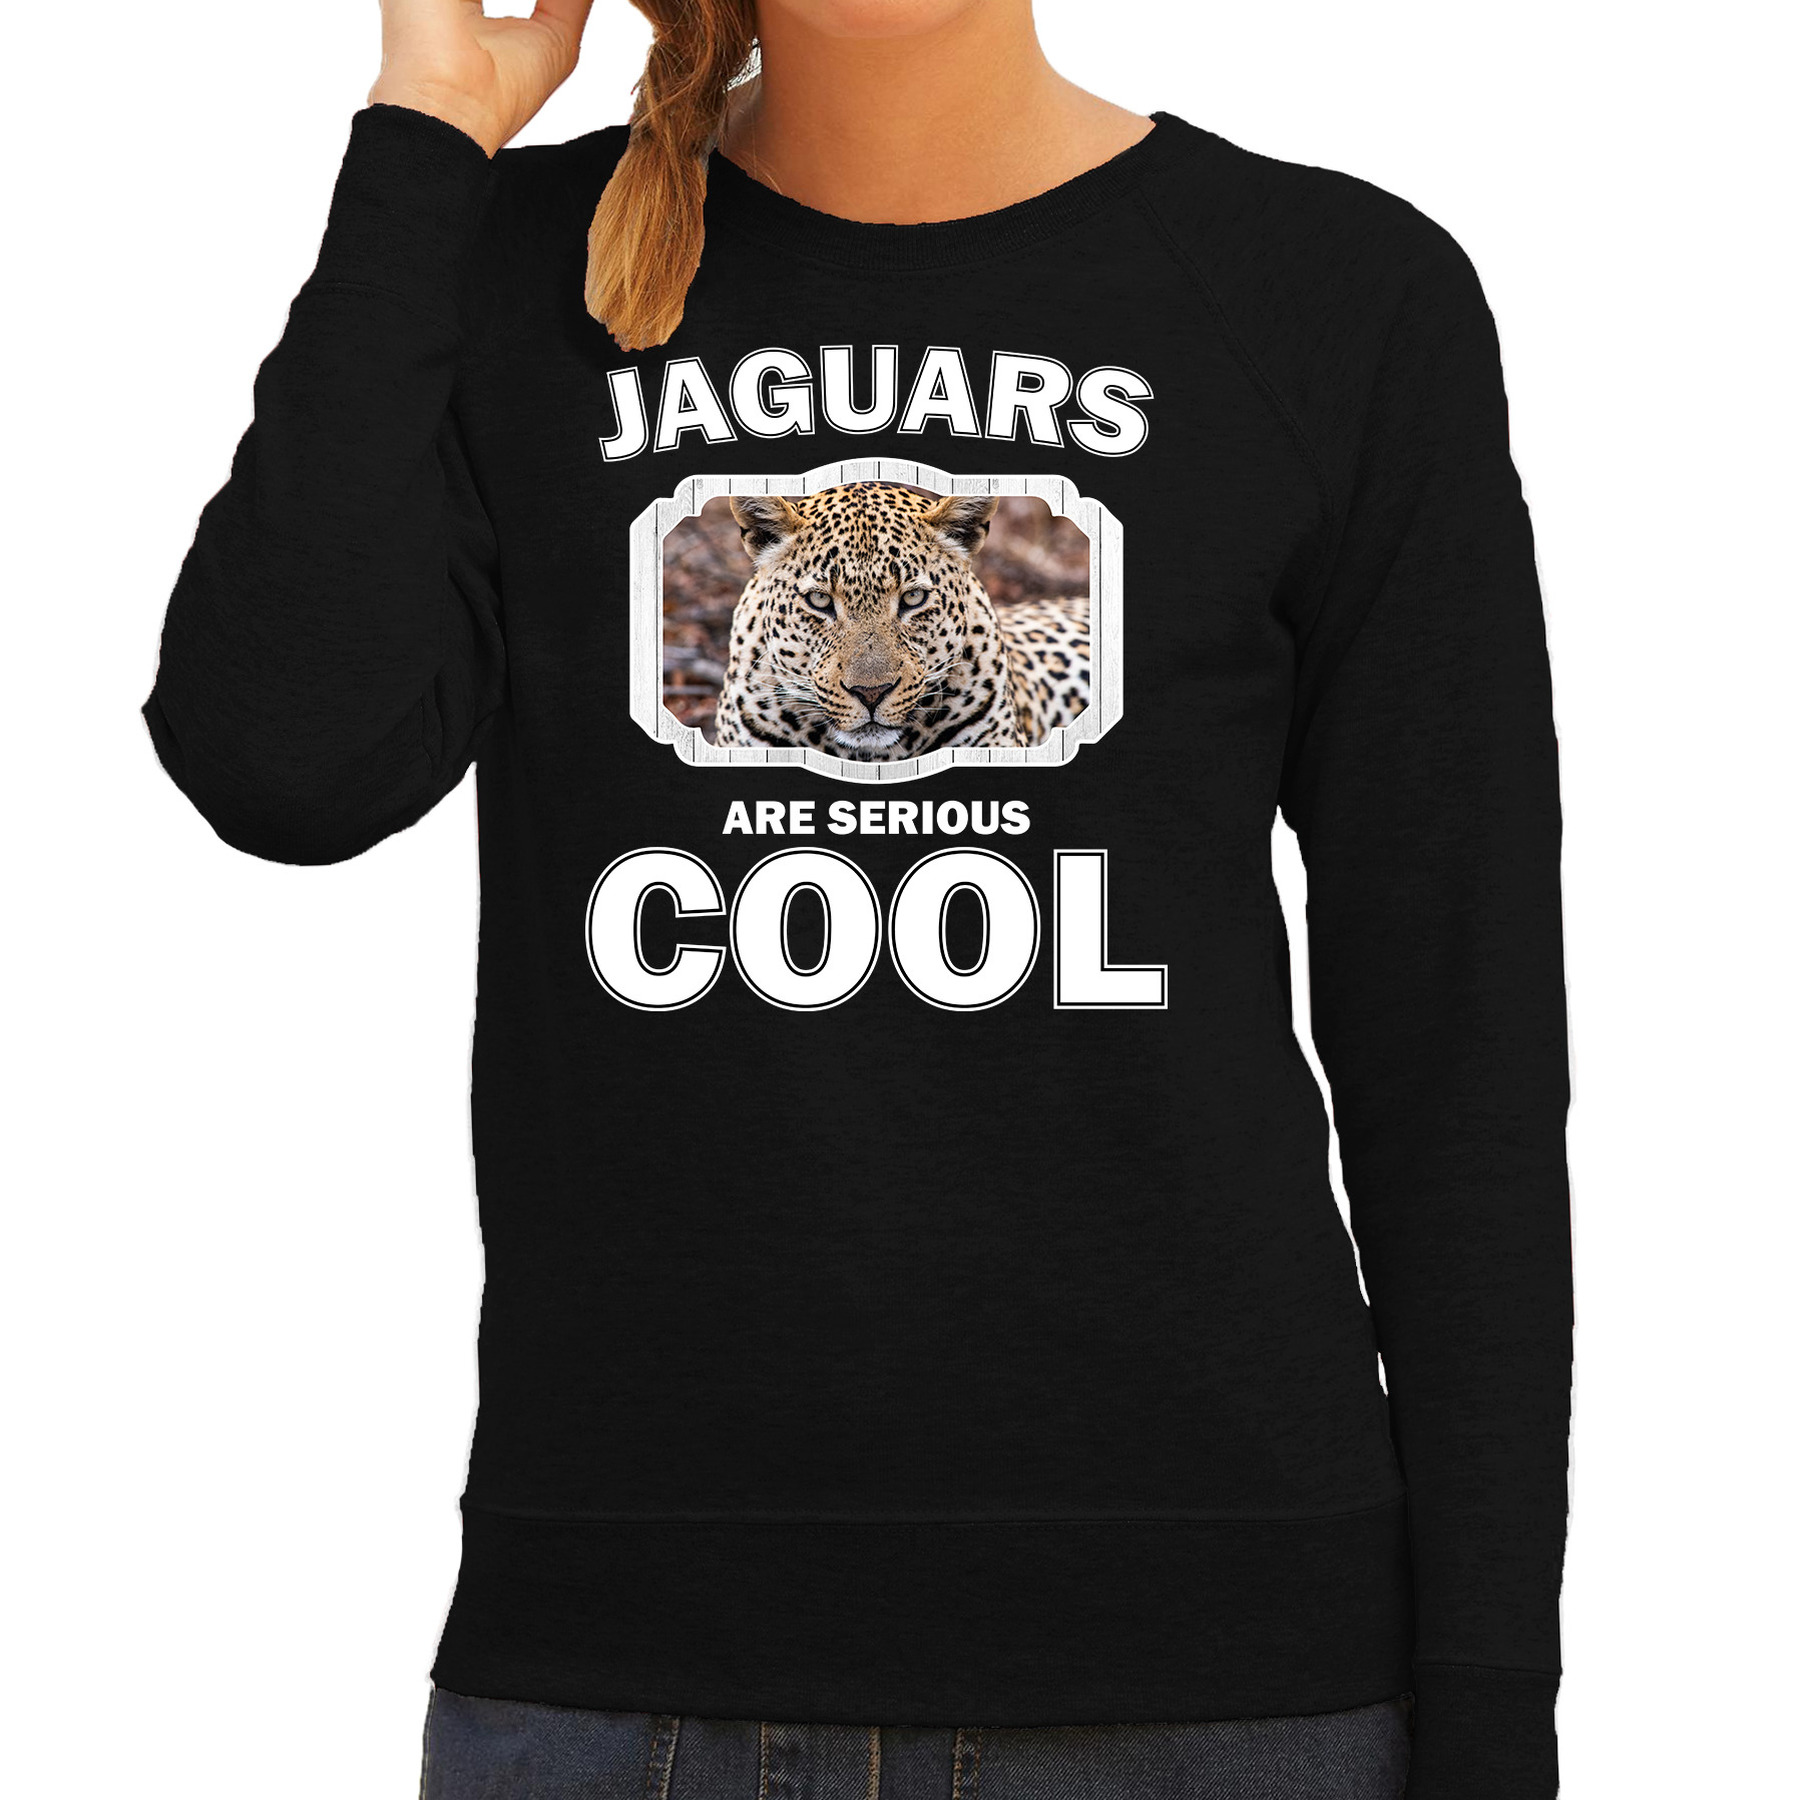 Sweater jaguars are serious cool zwart dames - jaguars/ jaguar trui